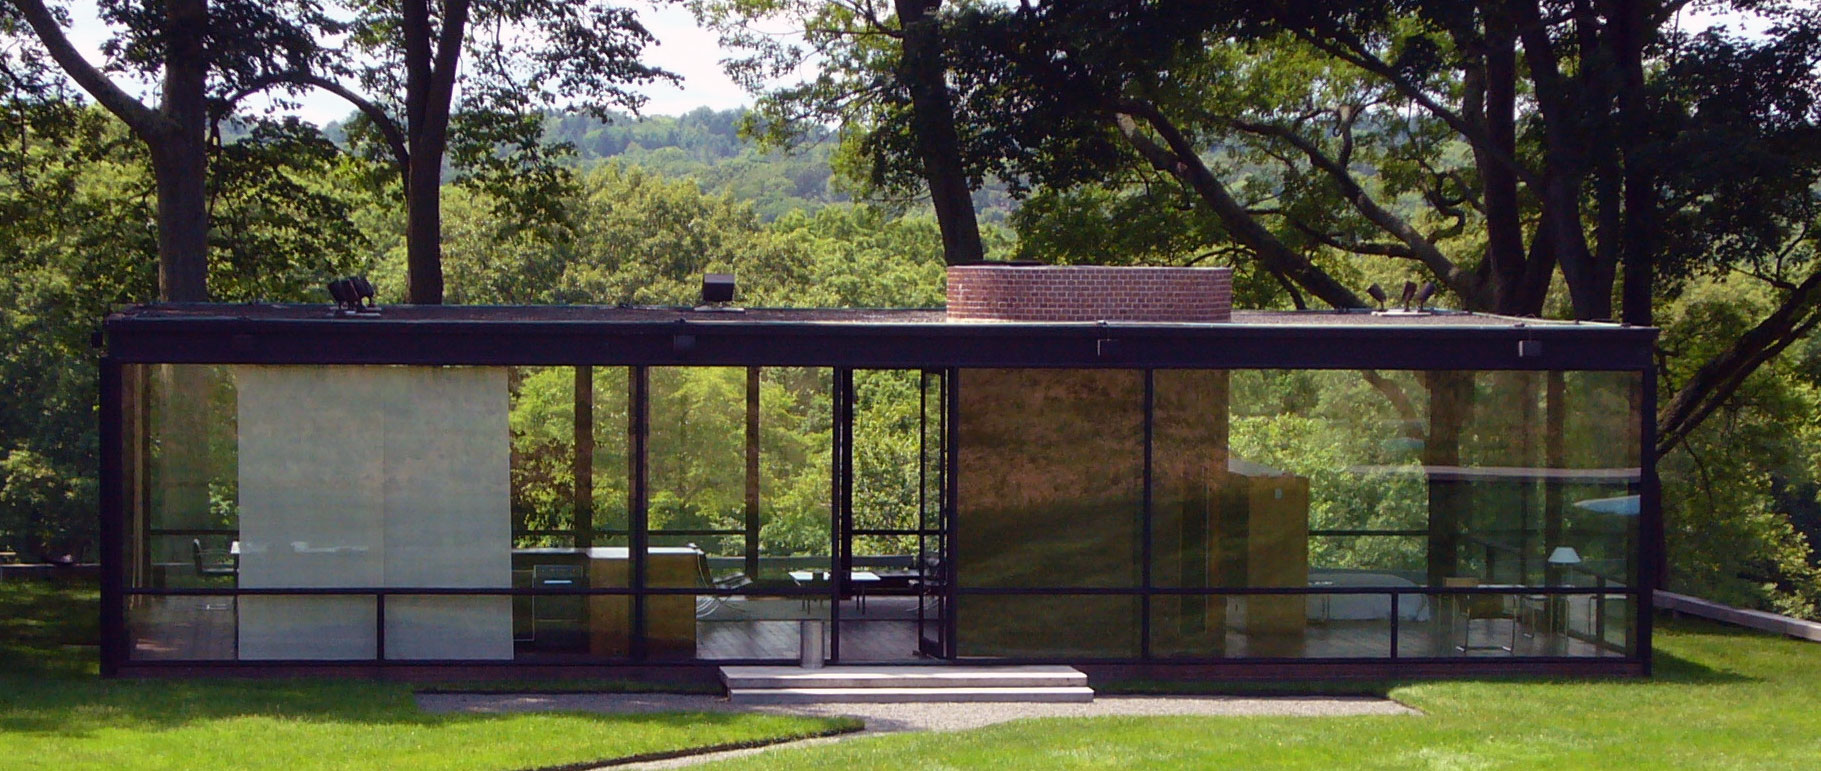 The Glass House by Philip Johnson. Photograph by Staib, courtesy of Wikimedia Commons